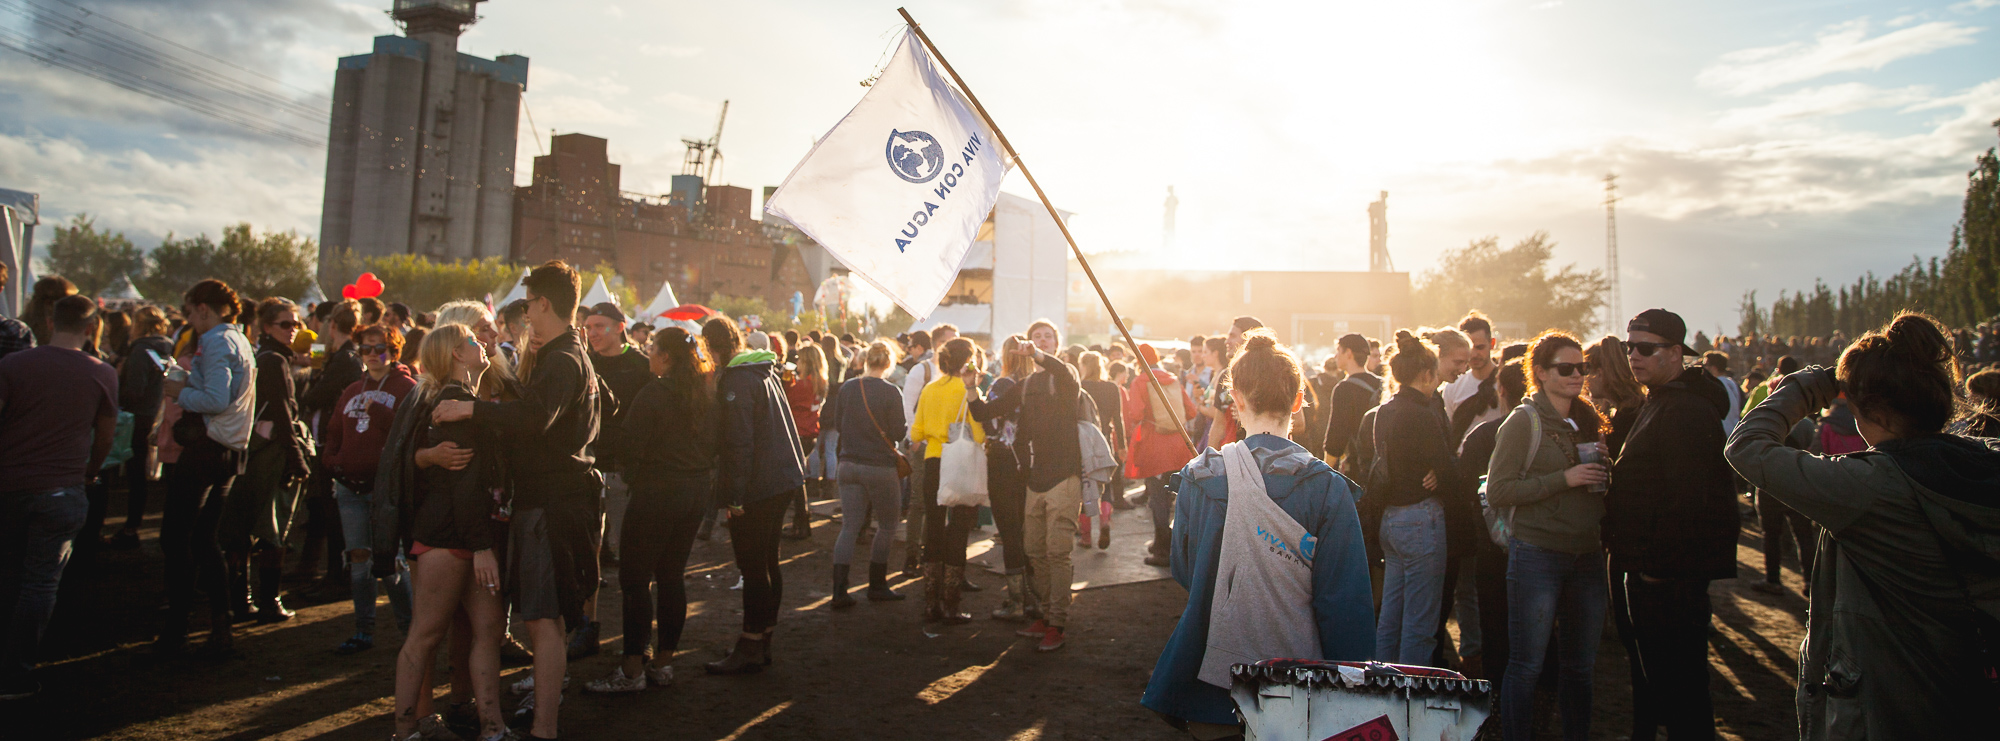 2017 Dockville Tag 3 Header-1.jpg